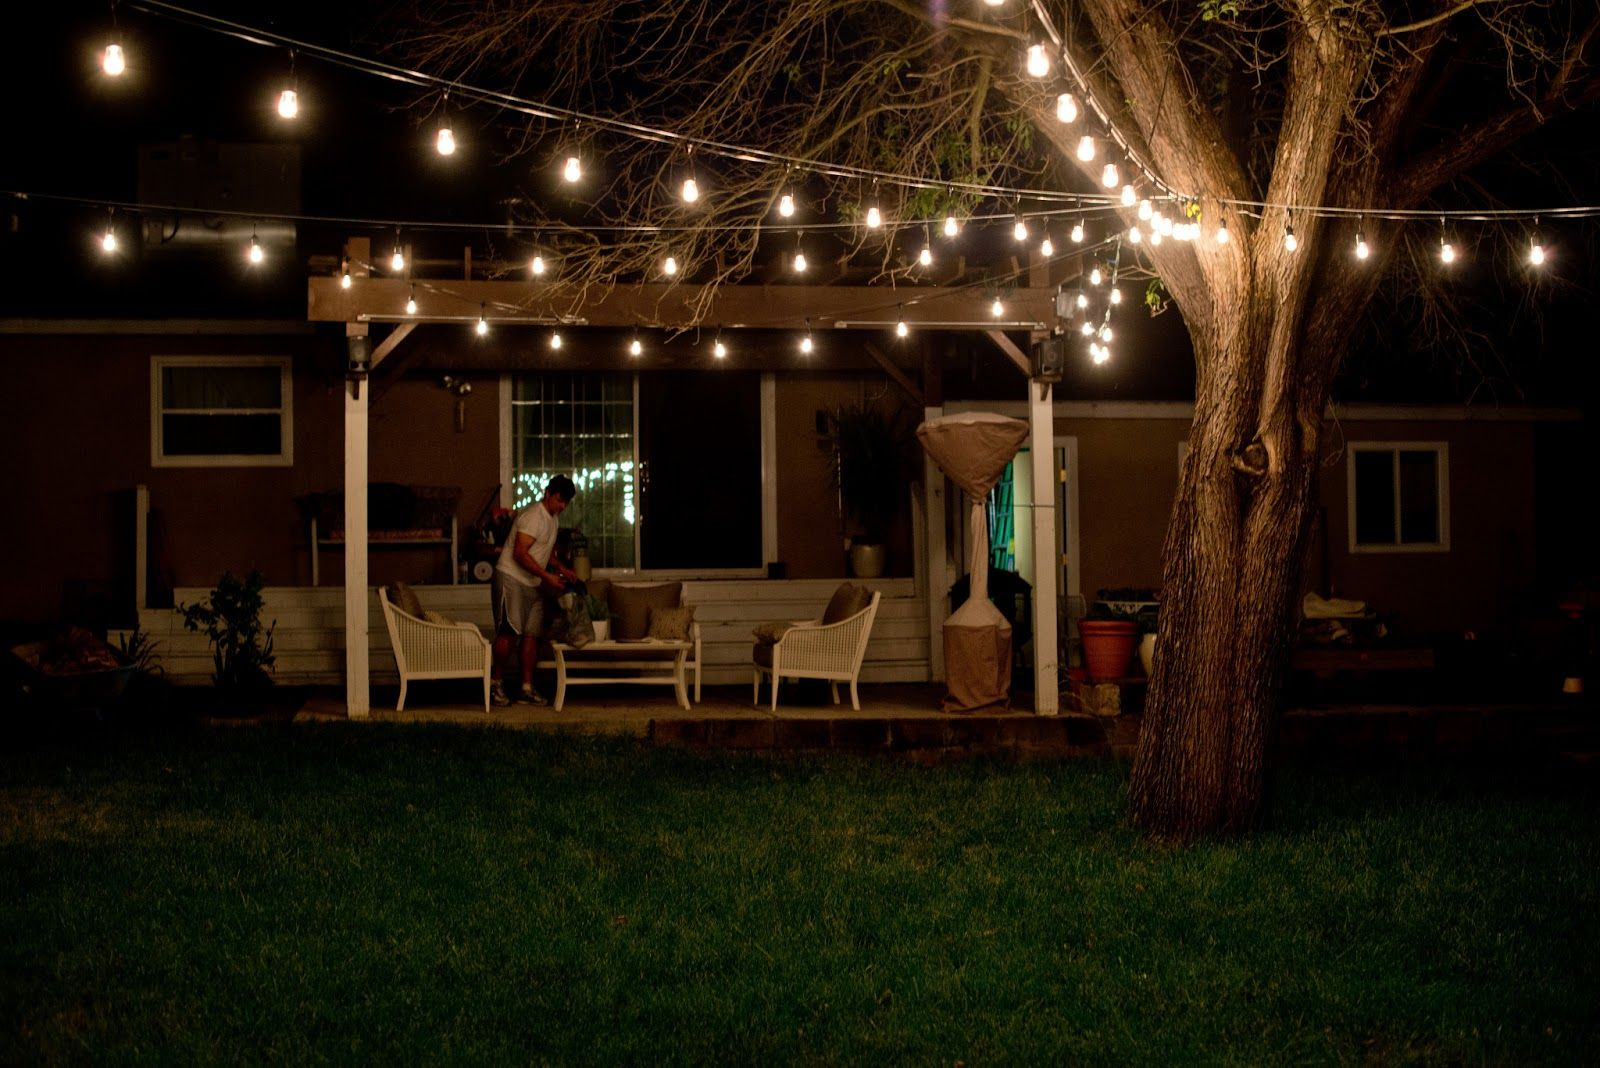 Domestic Fashionista: Industrial Vintage Backyard Lighting | The ...